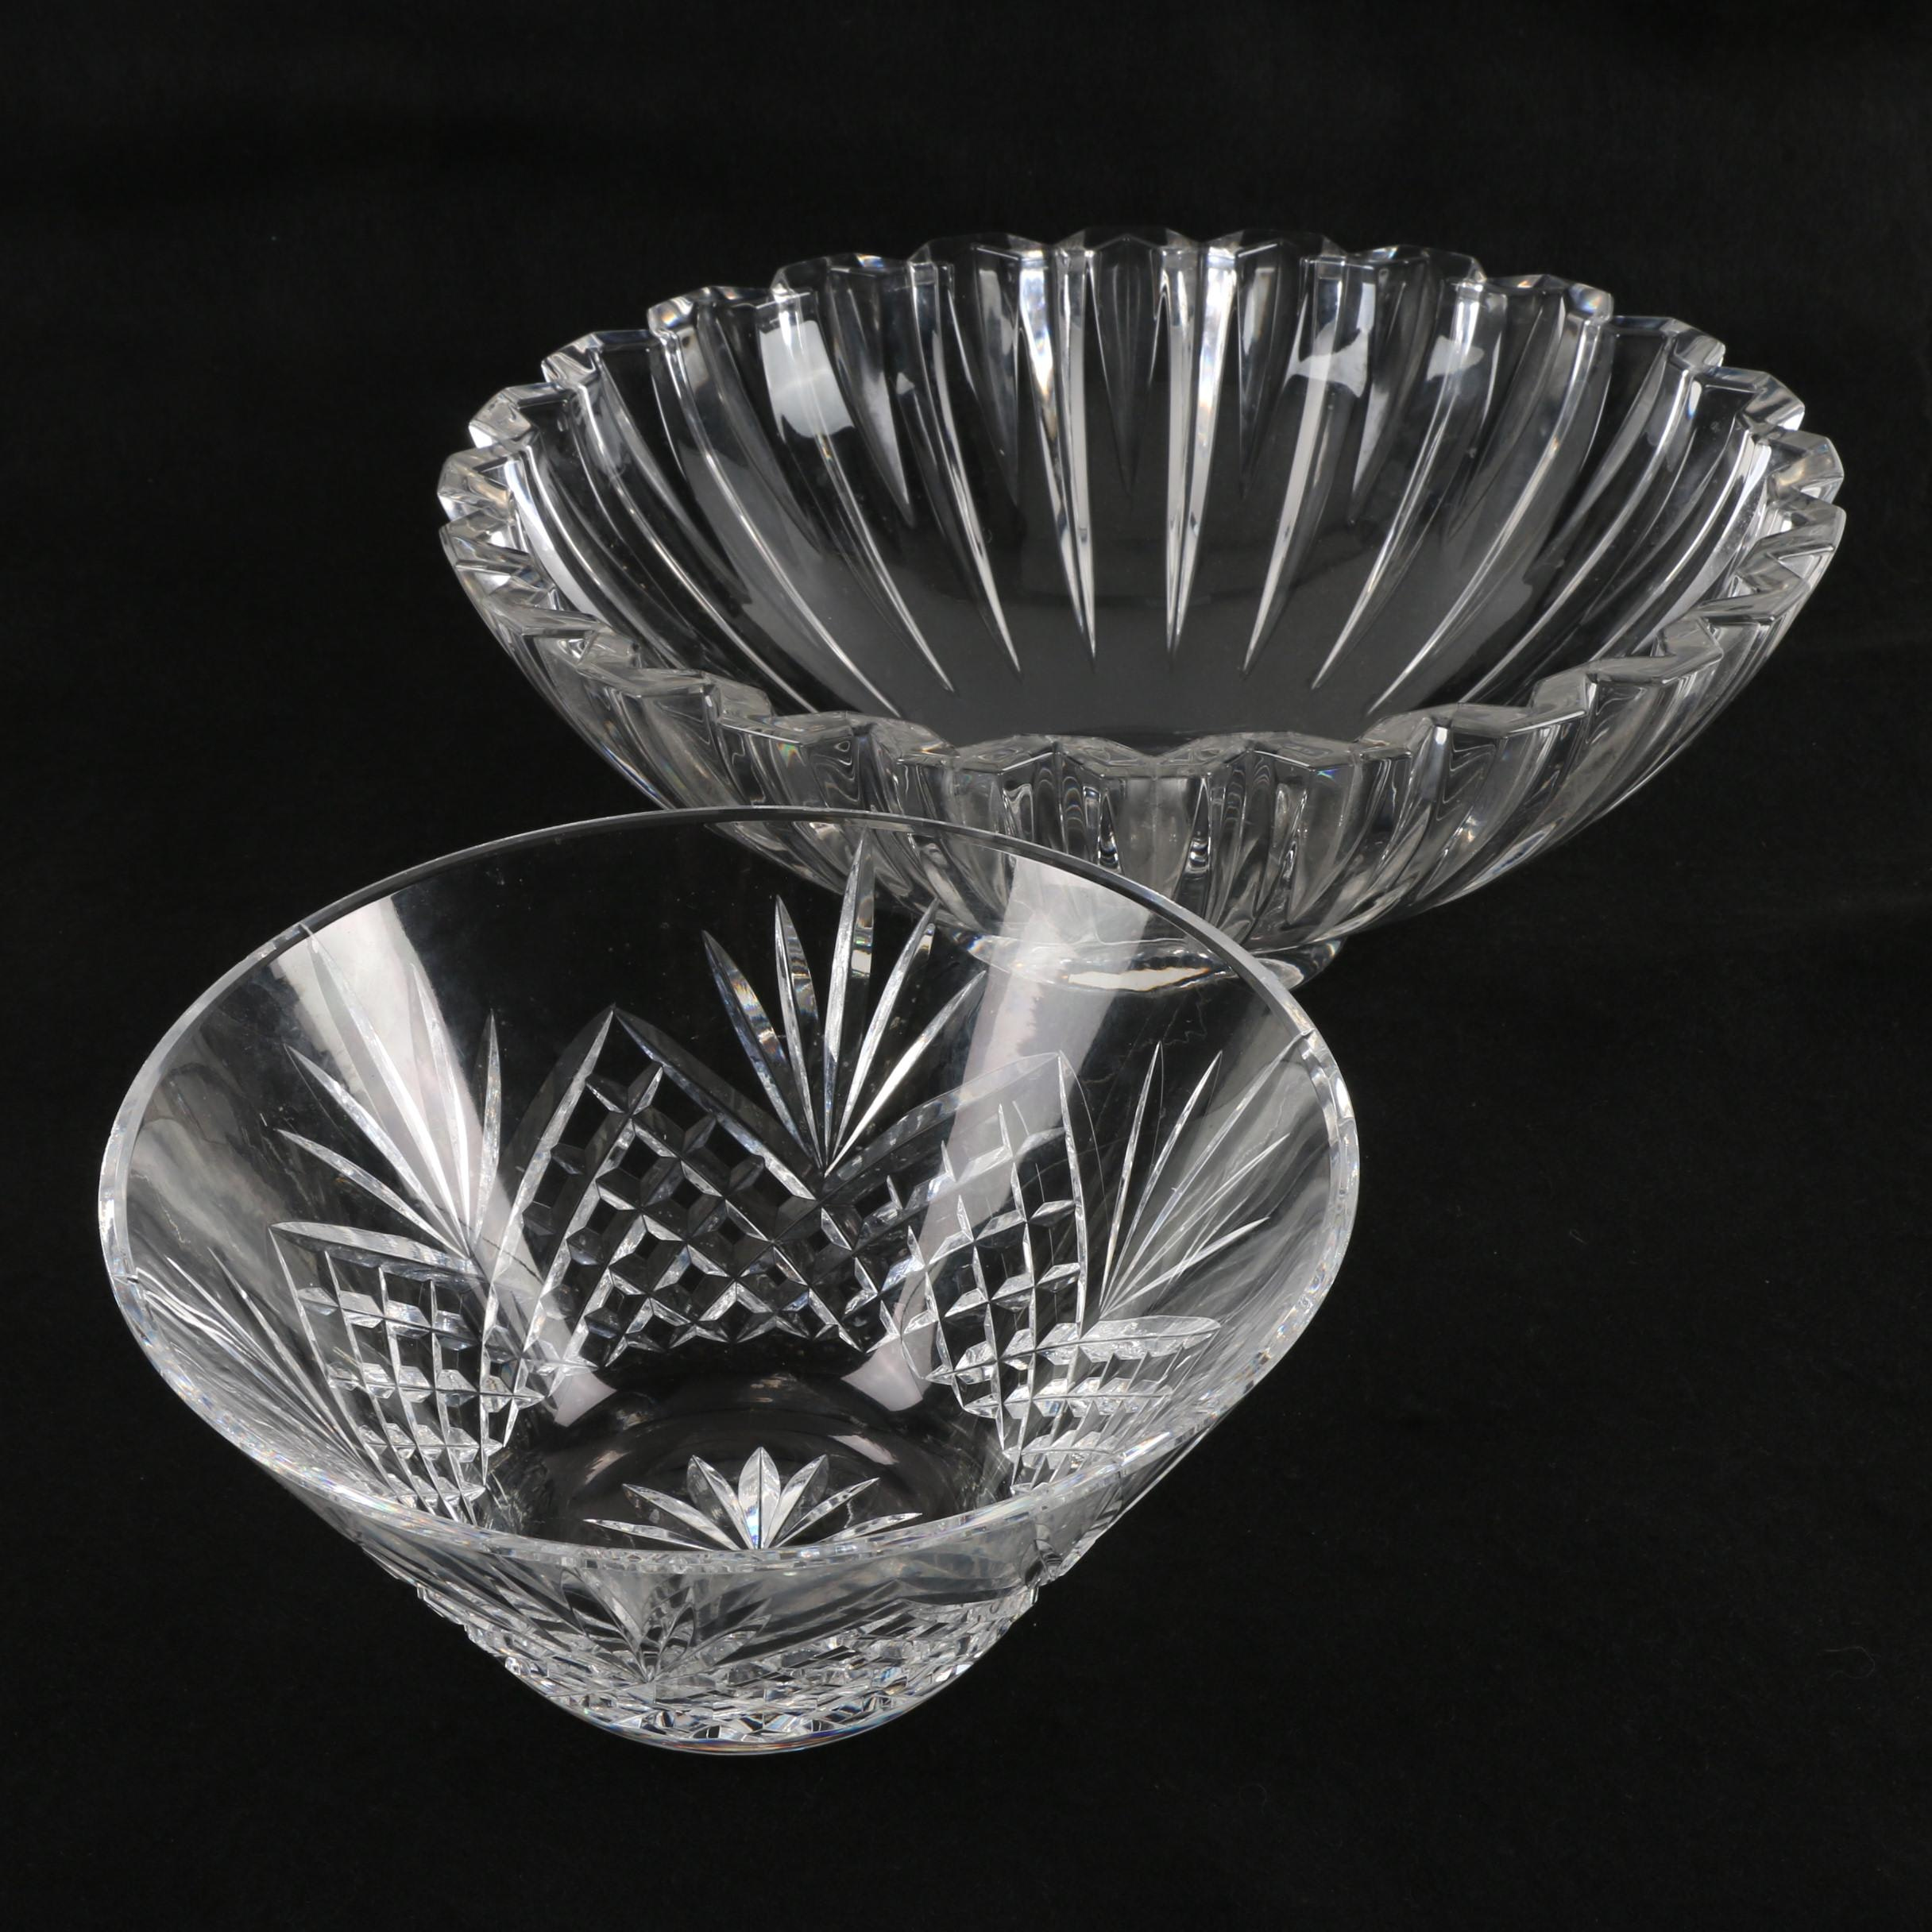 Crystal Serving Bowls Featuring Waterford Crystal